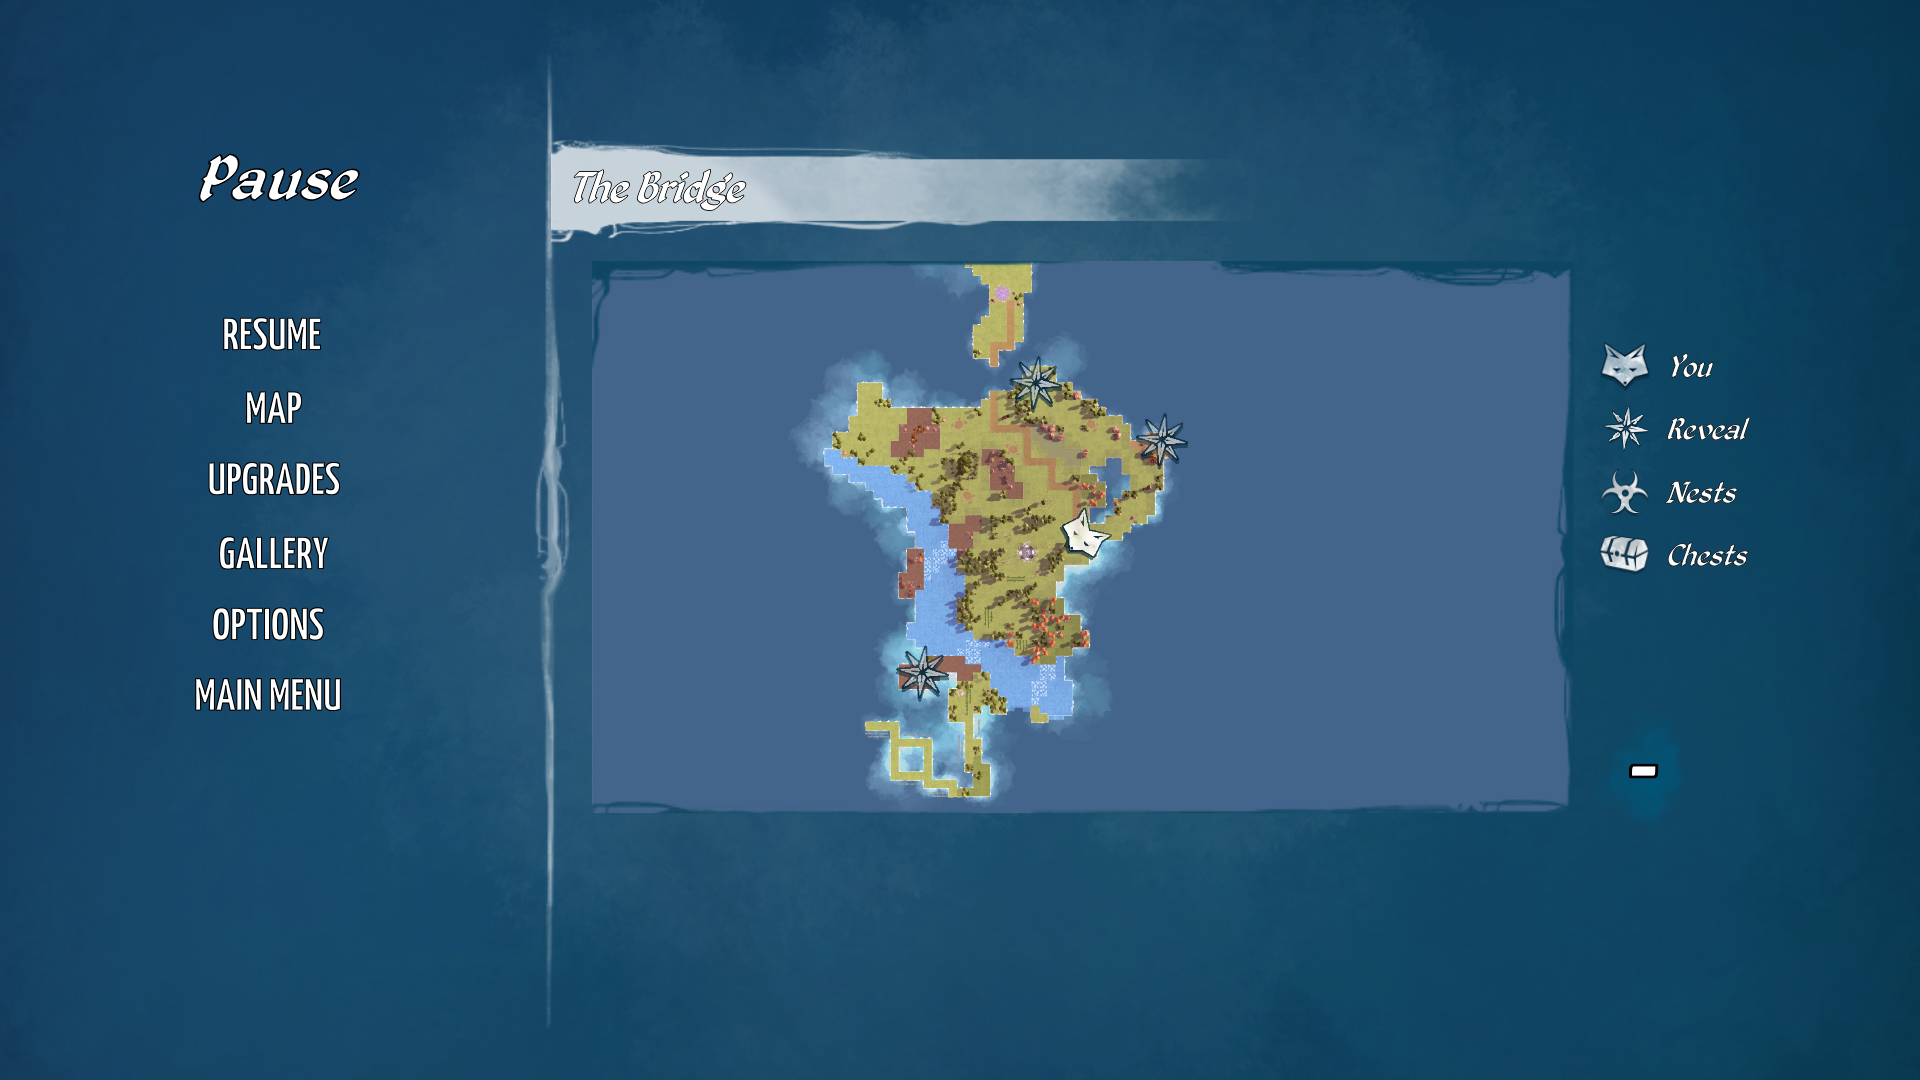 Even though the map started out small, it grew over time to where the map by the end is rather massive.